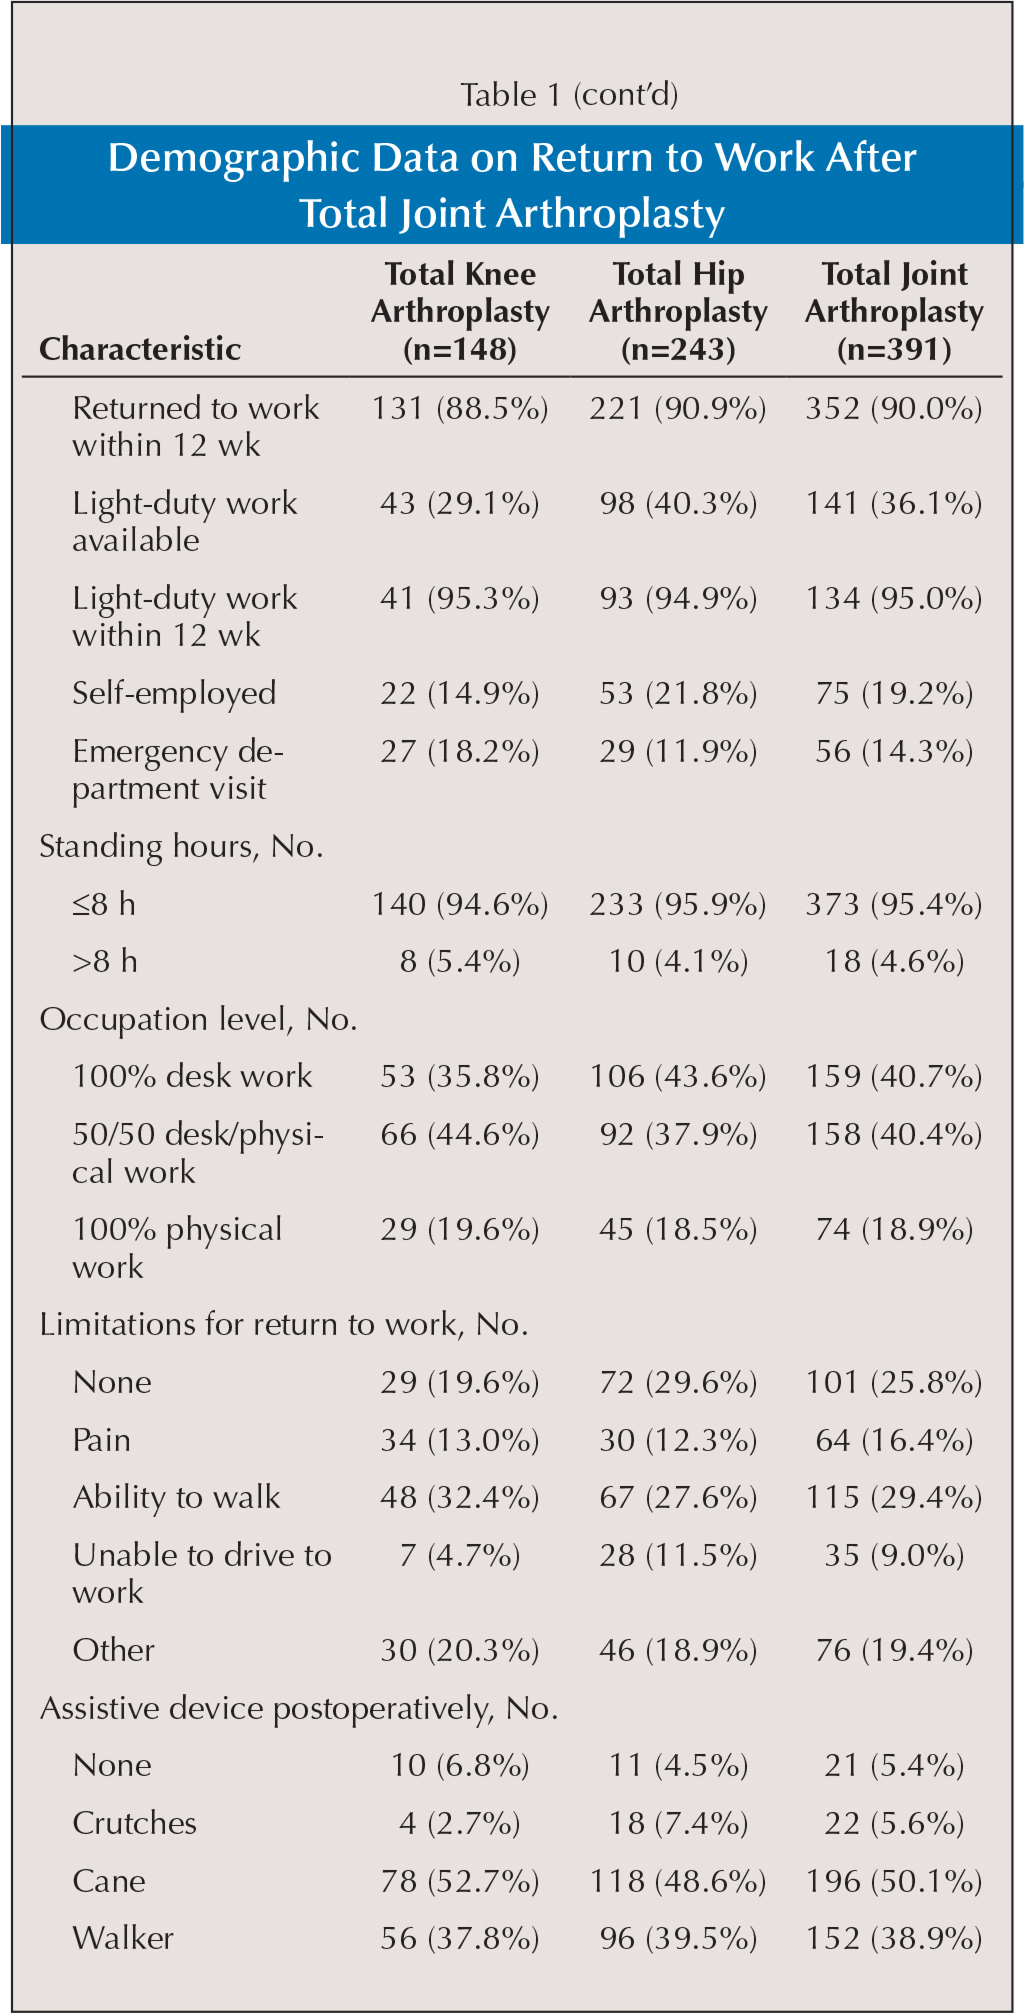 Demographic Data on Return to Work After Total Joint Arthroplasty